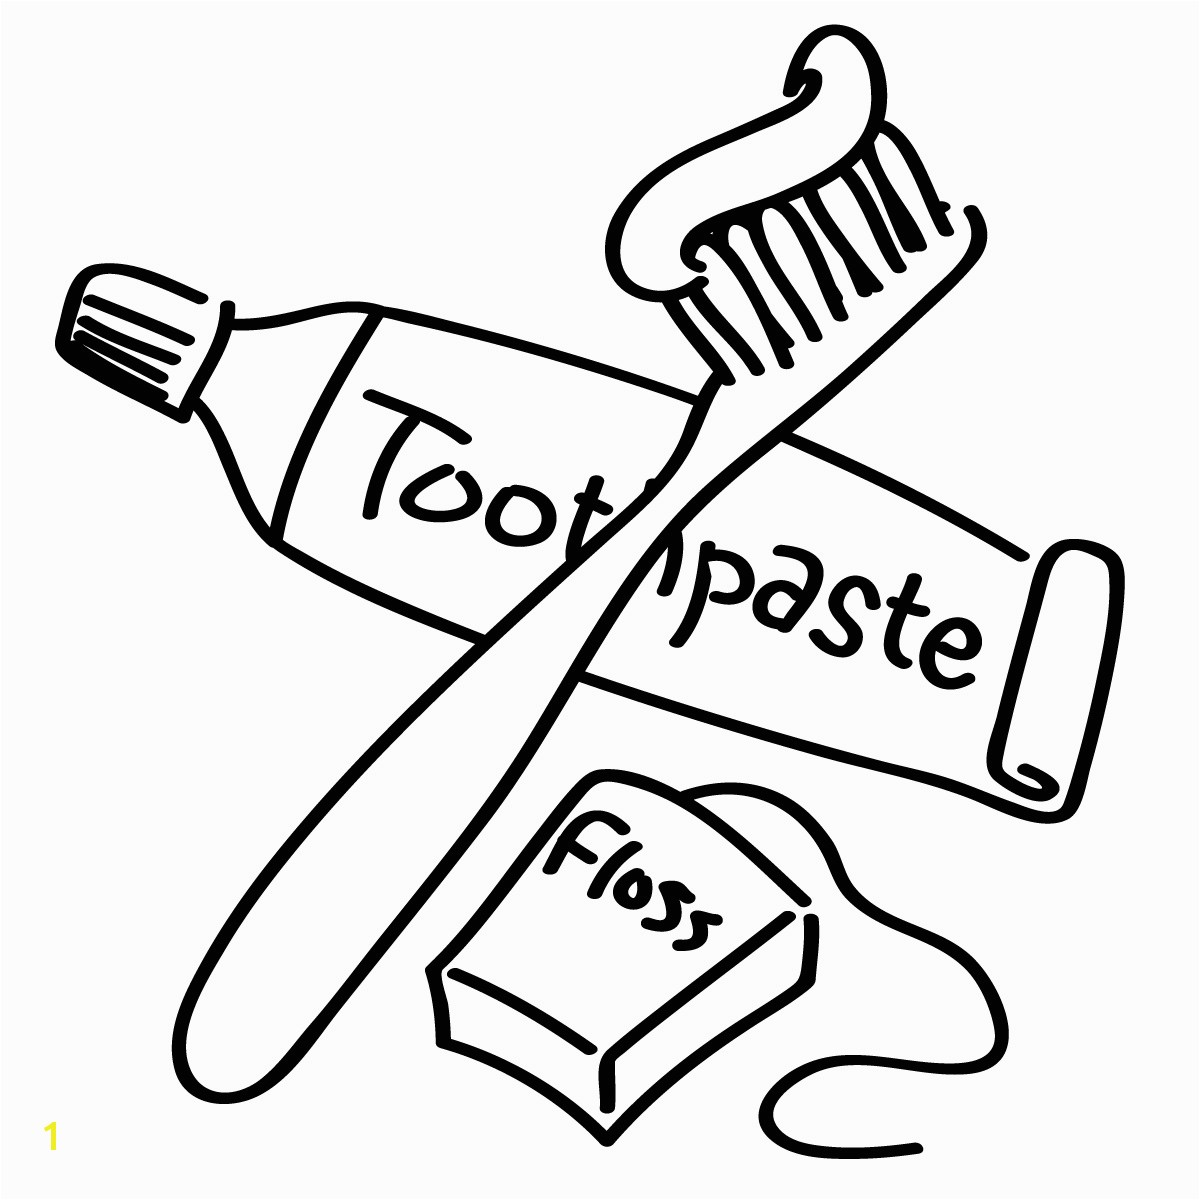 Brush Teeth Brushing Teeth Coloring Pages 4Fbb8 Clip Art Image